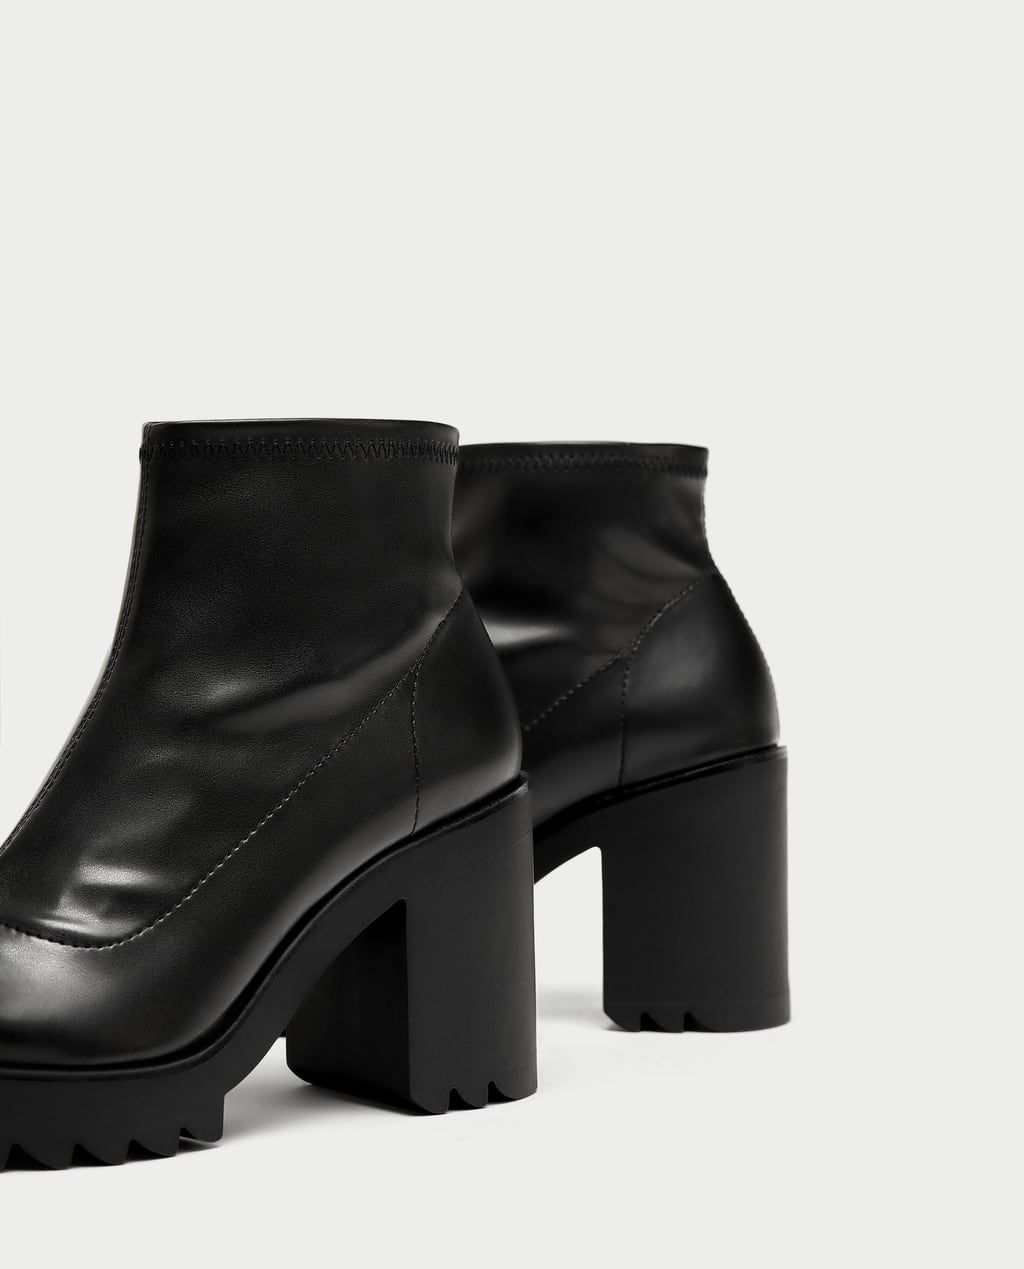 893e431d SOCK-STYLE ANKLE BOOTS WITH TRACK SOLE-Ankle Boots-SHOES-WOMAN | ZARA  United Kingdom